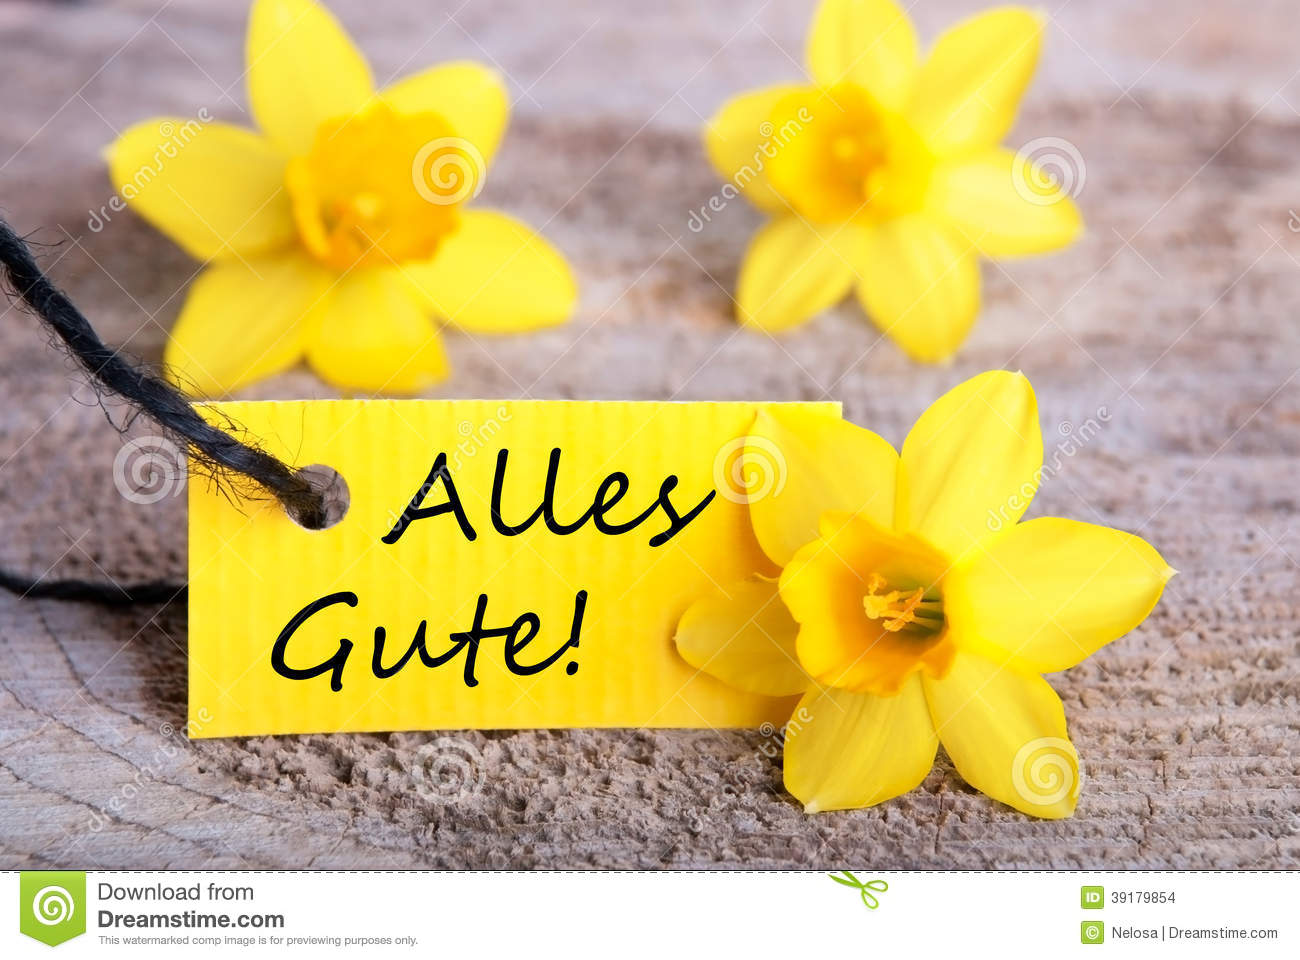 Alles gute picture freeuse download Yellow Label With Alles Gute Stock Photo - Image: 39179854 picture freeuse download